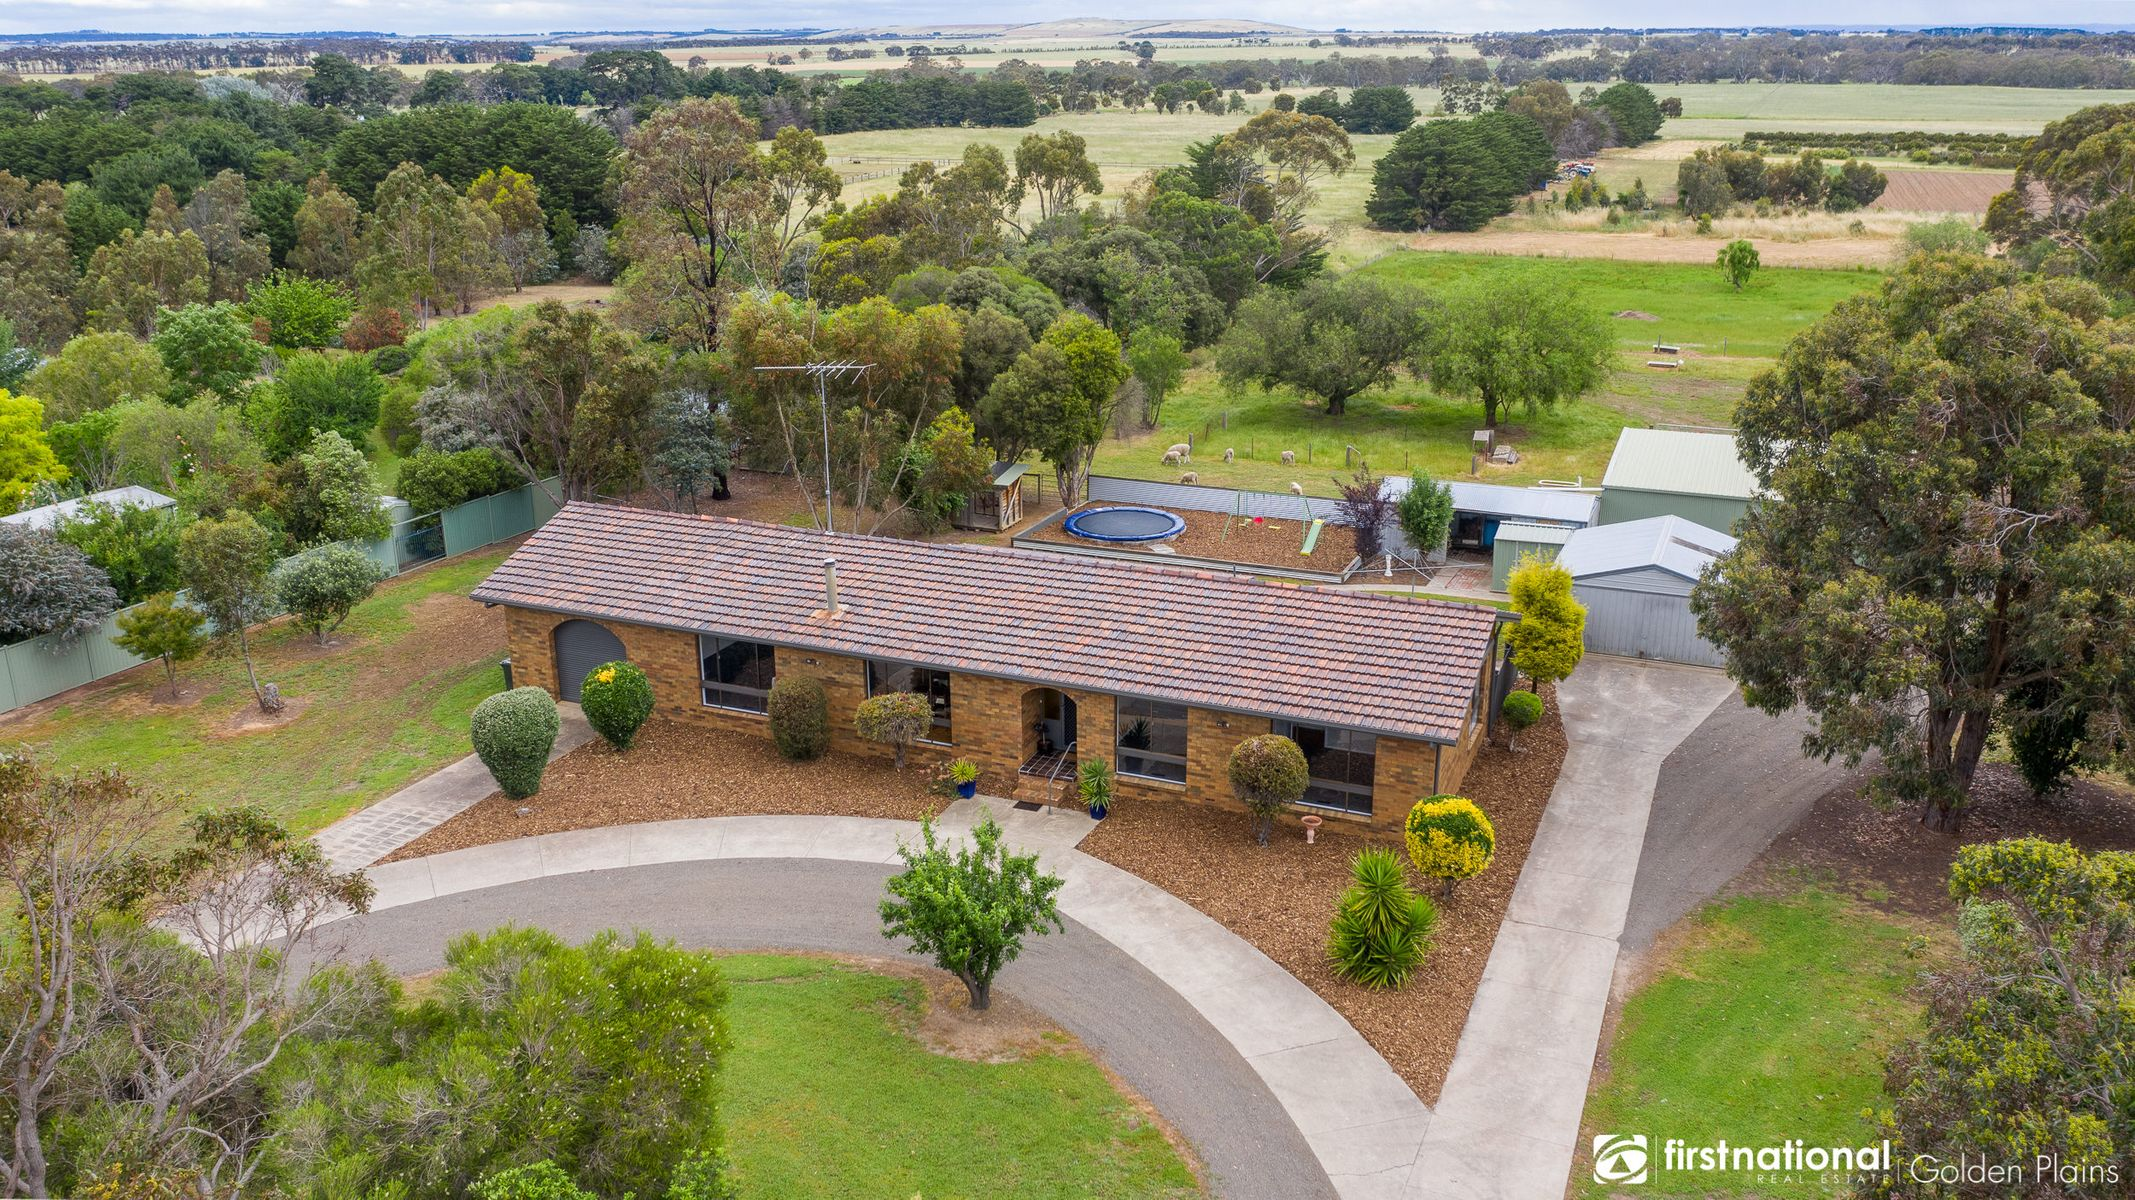 49 McCallum Road, Inverleigh, VIC 3321